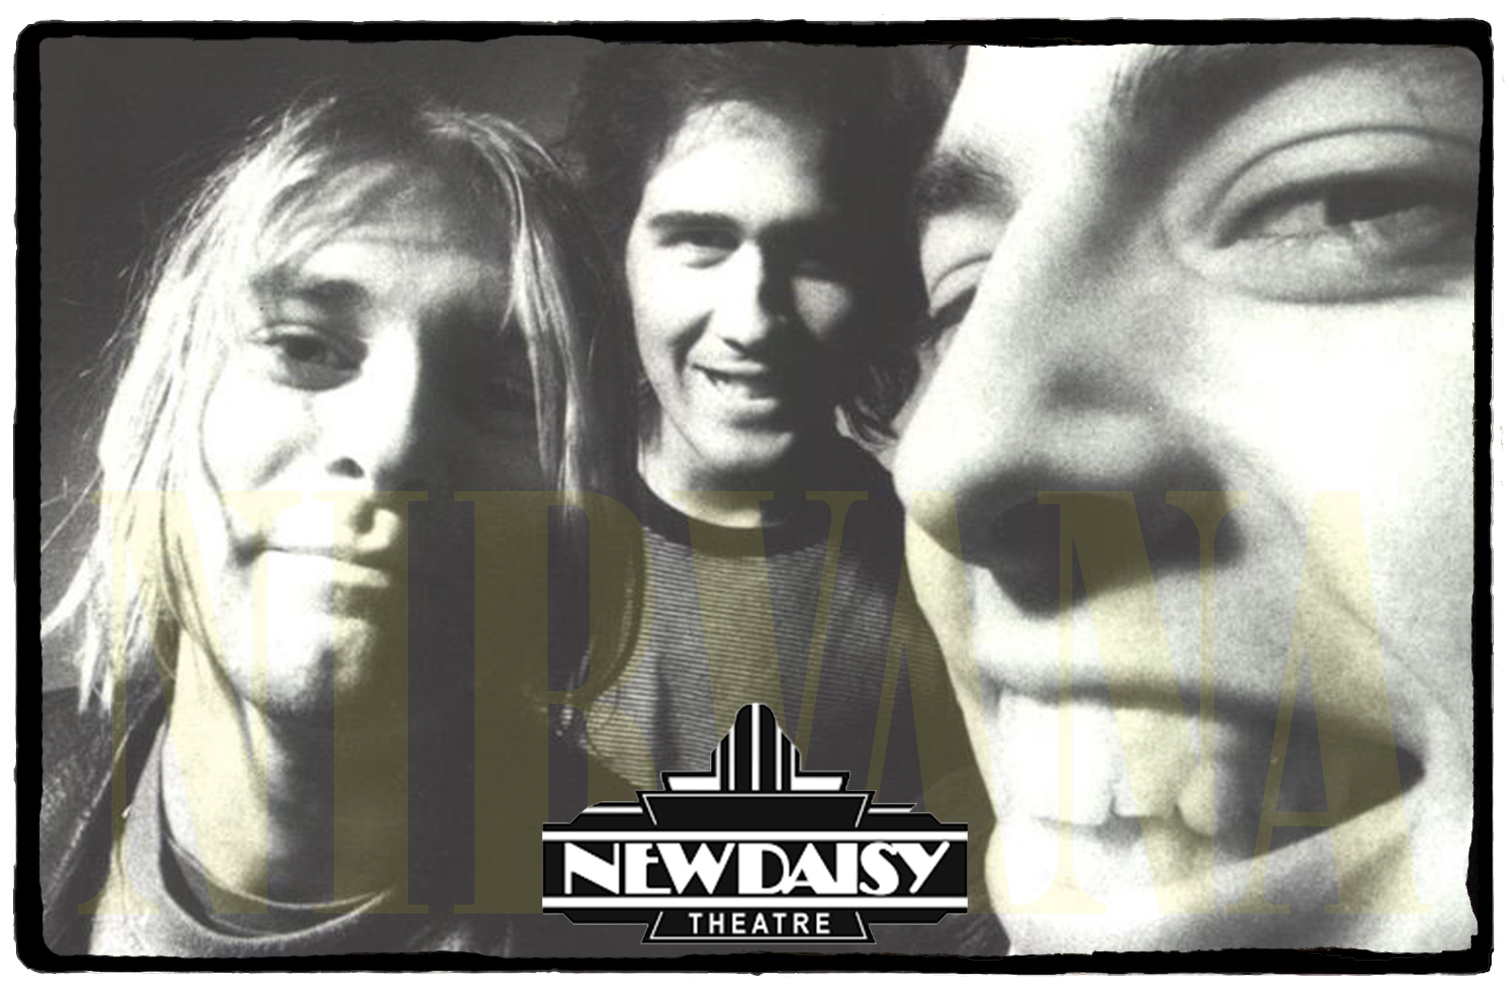 Nirvana no New Daisy Theatre – 07 de Outubro de 1991